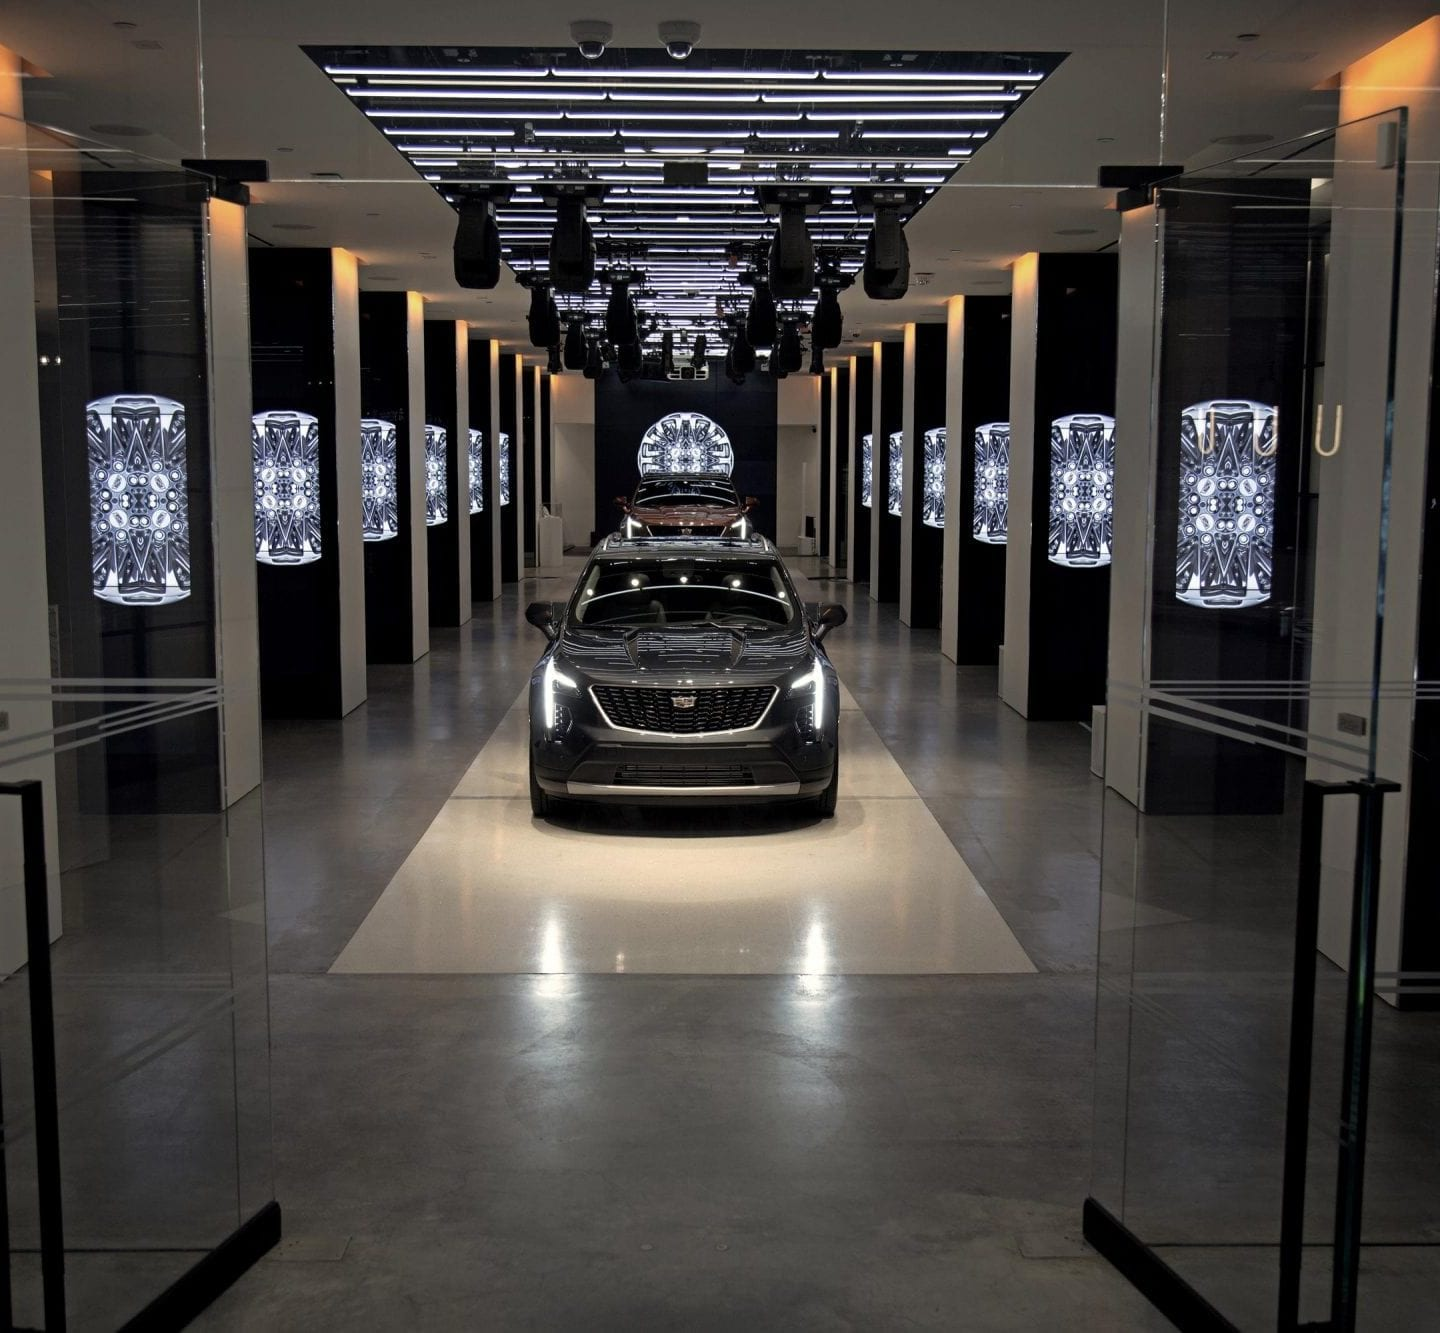 Why are luxury cars so cheap when leased?